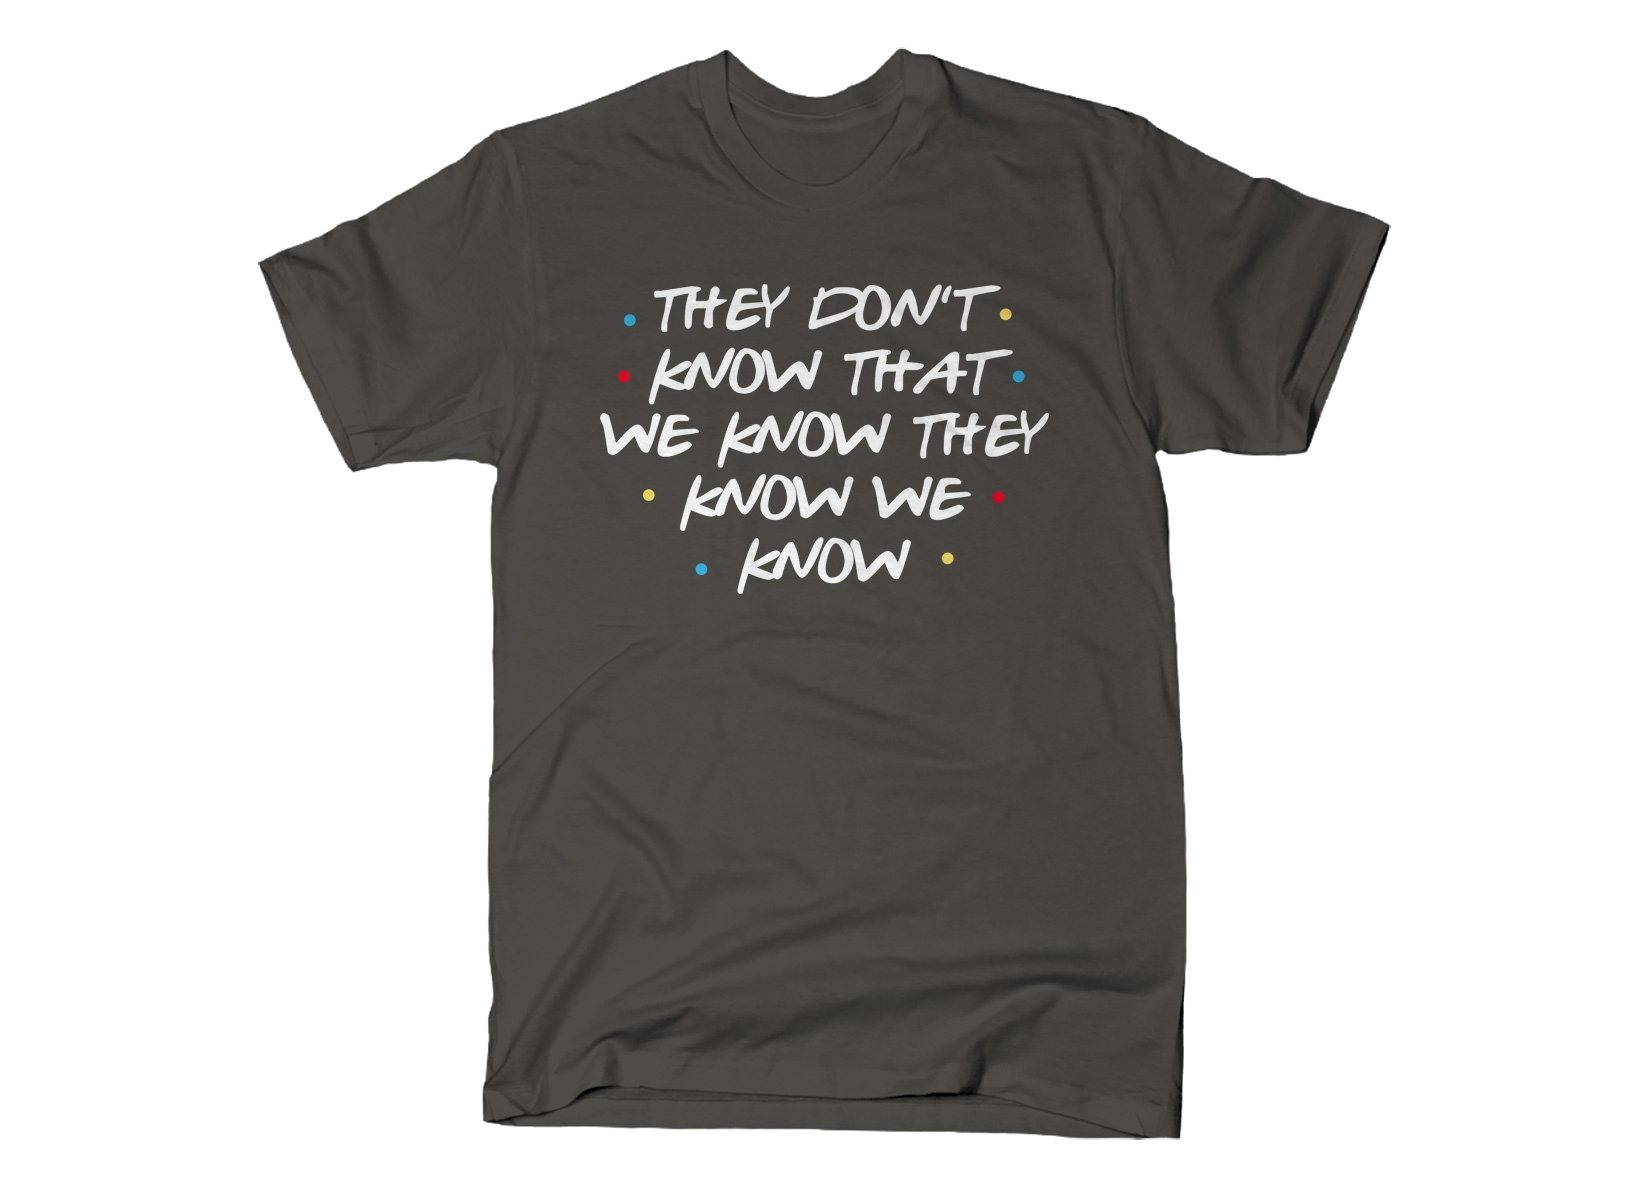 They Don't Know That We Know They Know We Know on Mens T-Shirt